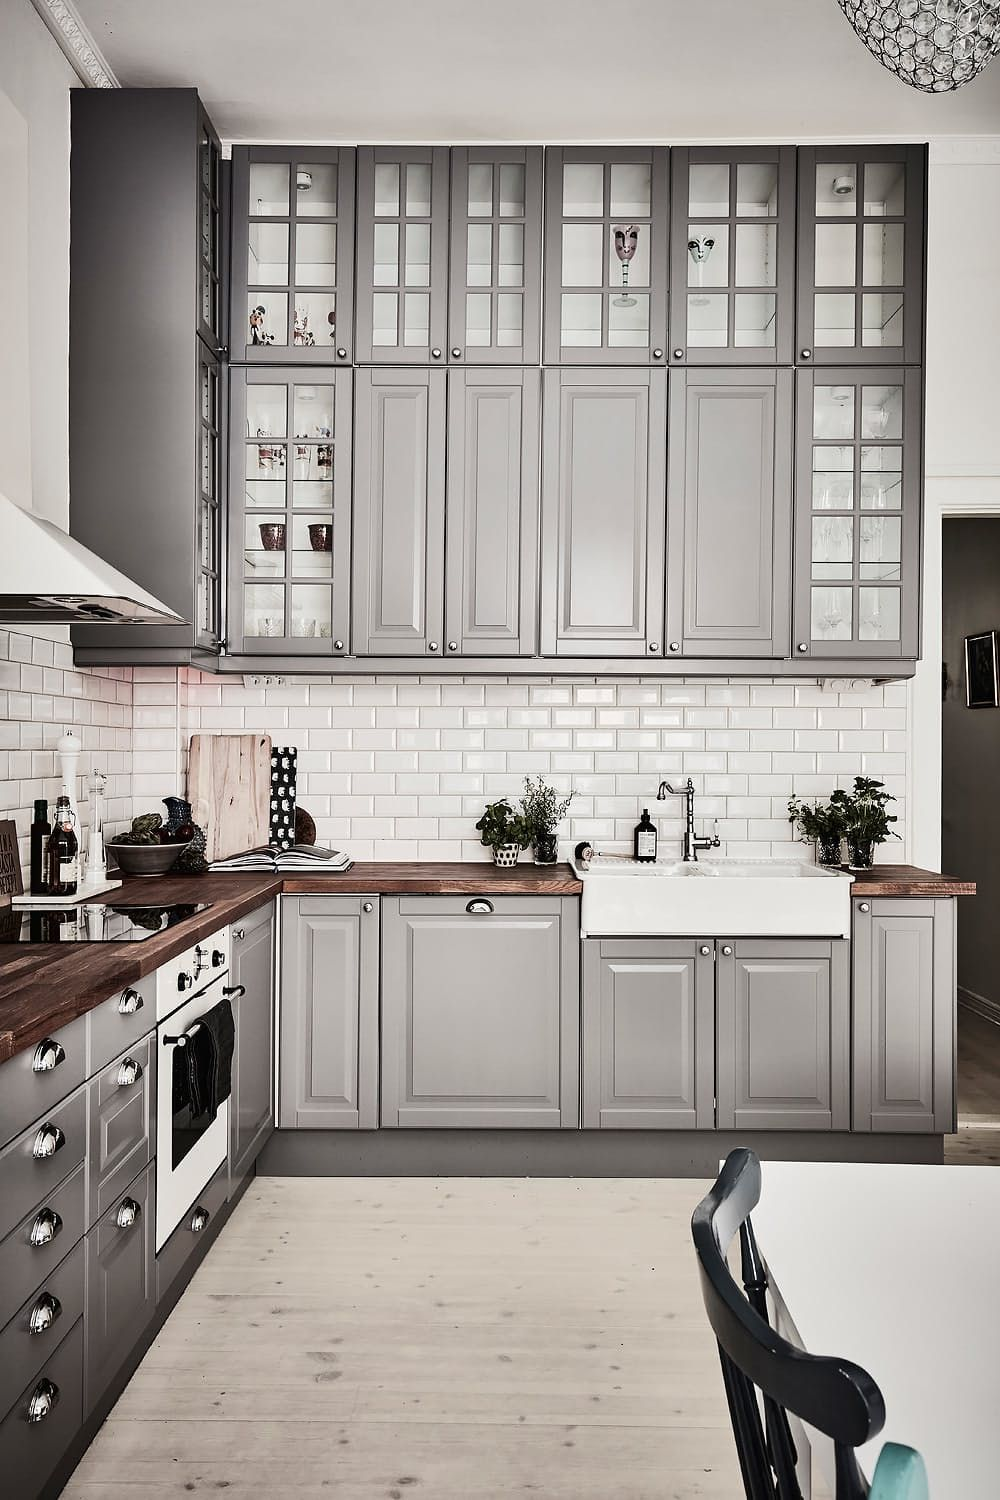 Inspiring Kitchens You Wonu0027t Believe Are IKEA   Bodbyn Cabinet Fronts Give  This IKEA Kitchen From Entrance A More Traditional Look.